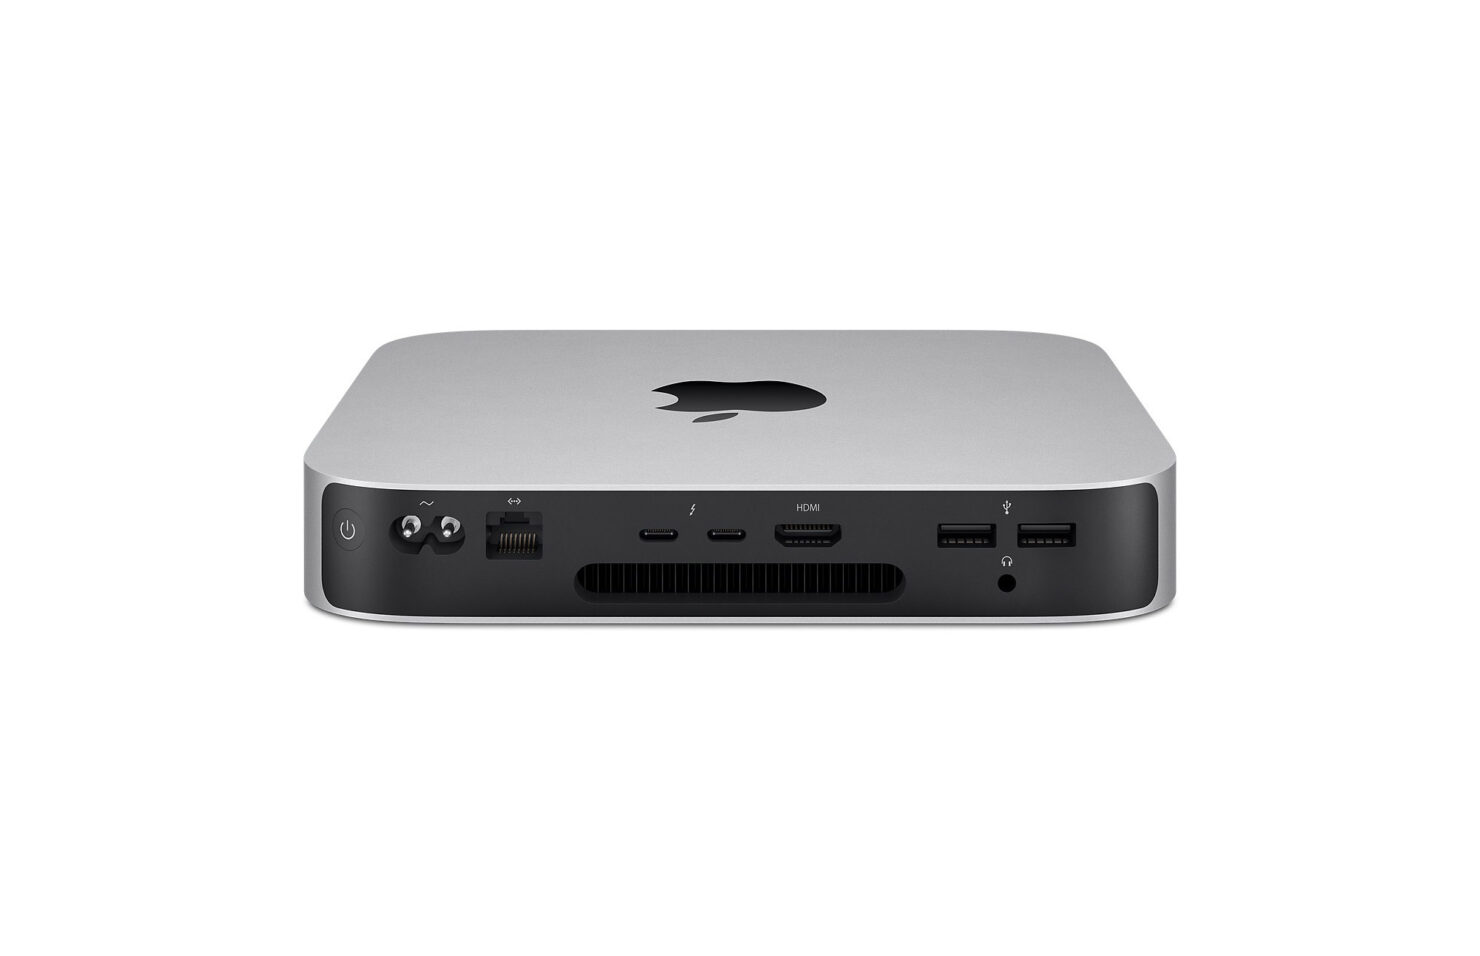 Apple Now Offering $500 Instead of $200 in Return Credit to Developers Who Purchased DTK Mac mini